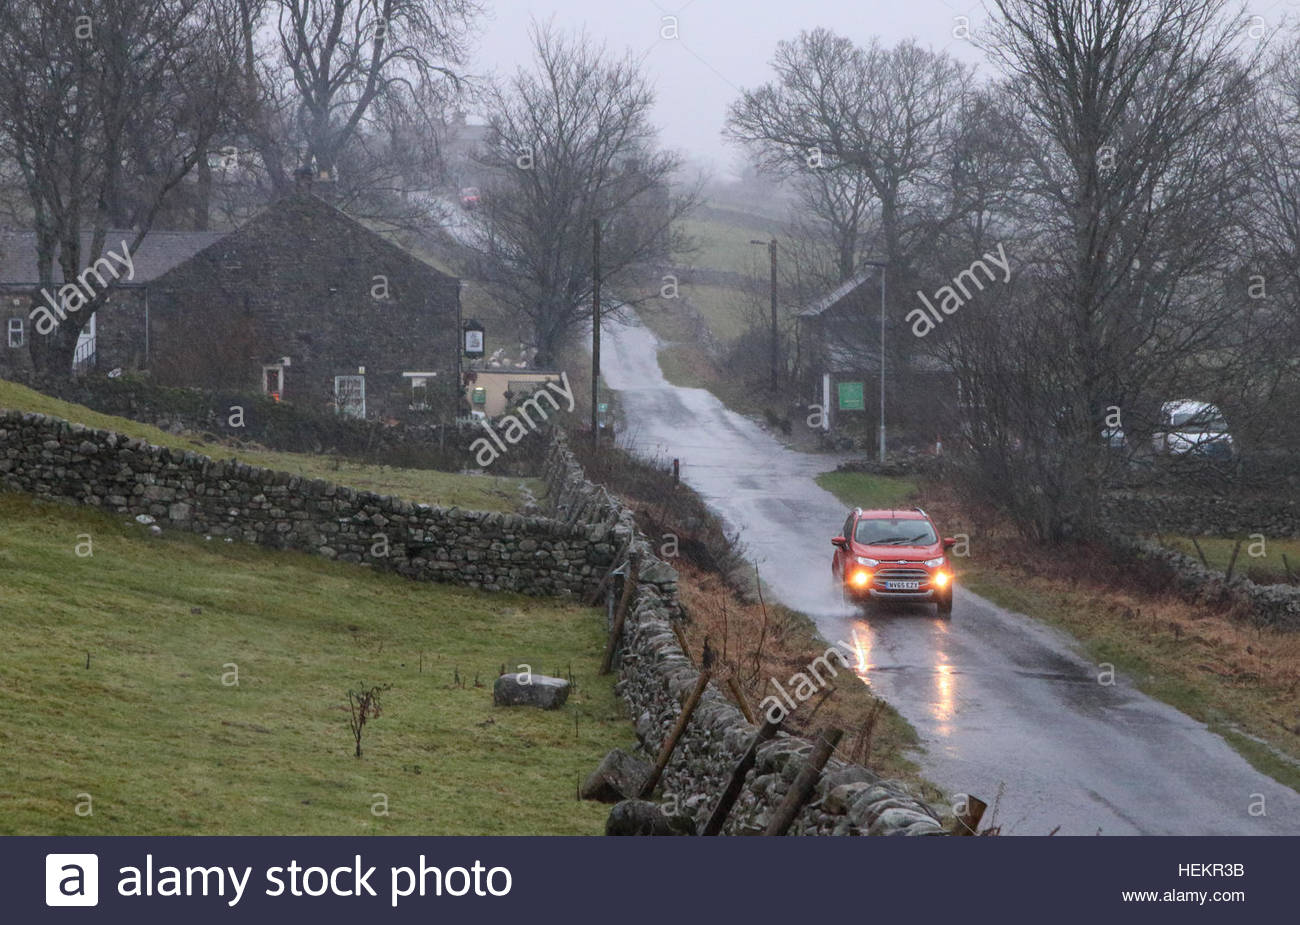 Holwick, Middleton-in-Teesdale, Co Durham, UK. 23rd Dec, 2016. As the second named storm of the season, Storm Barbara - Stock Image